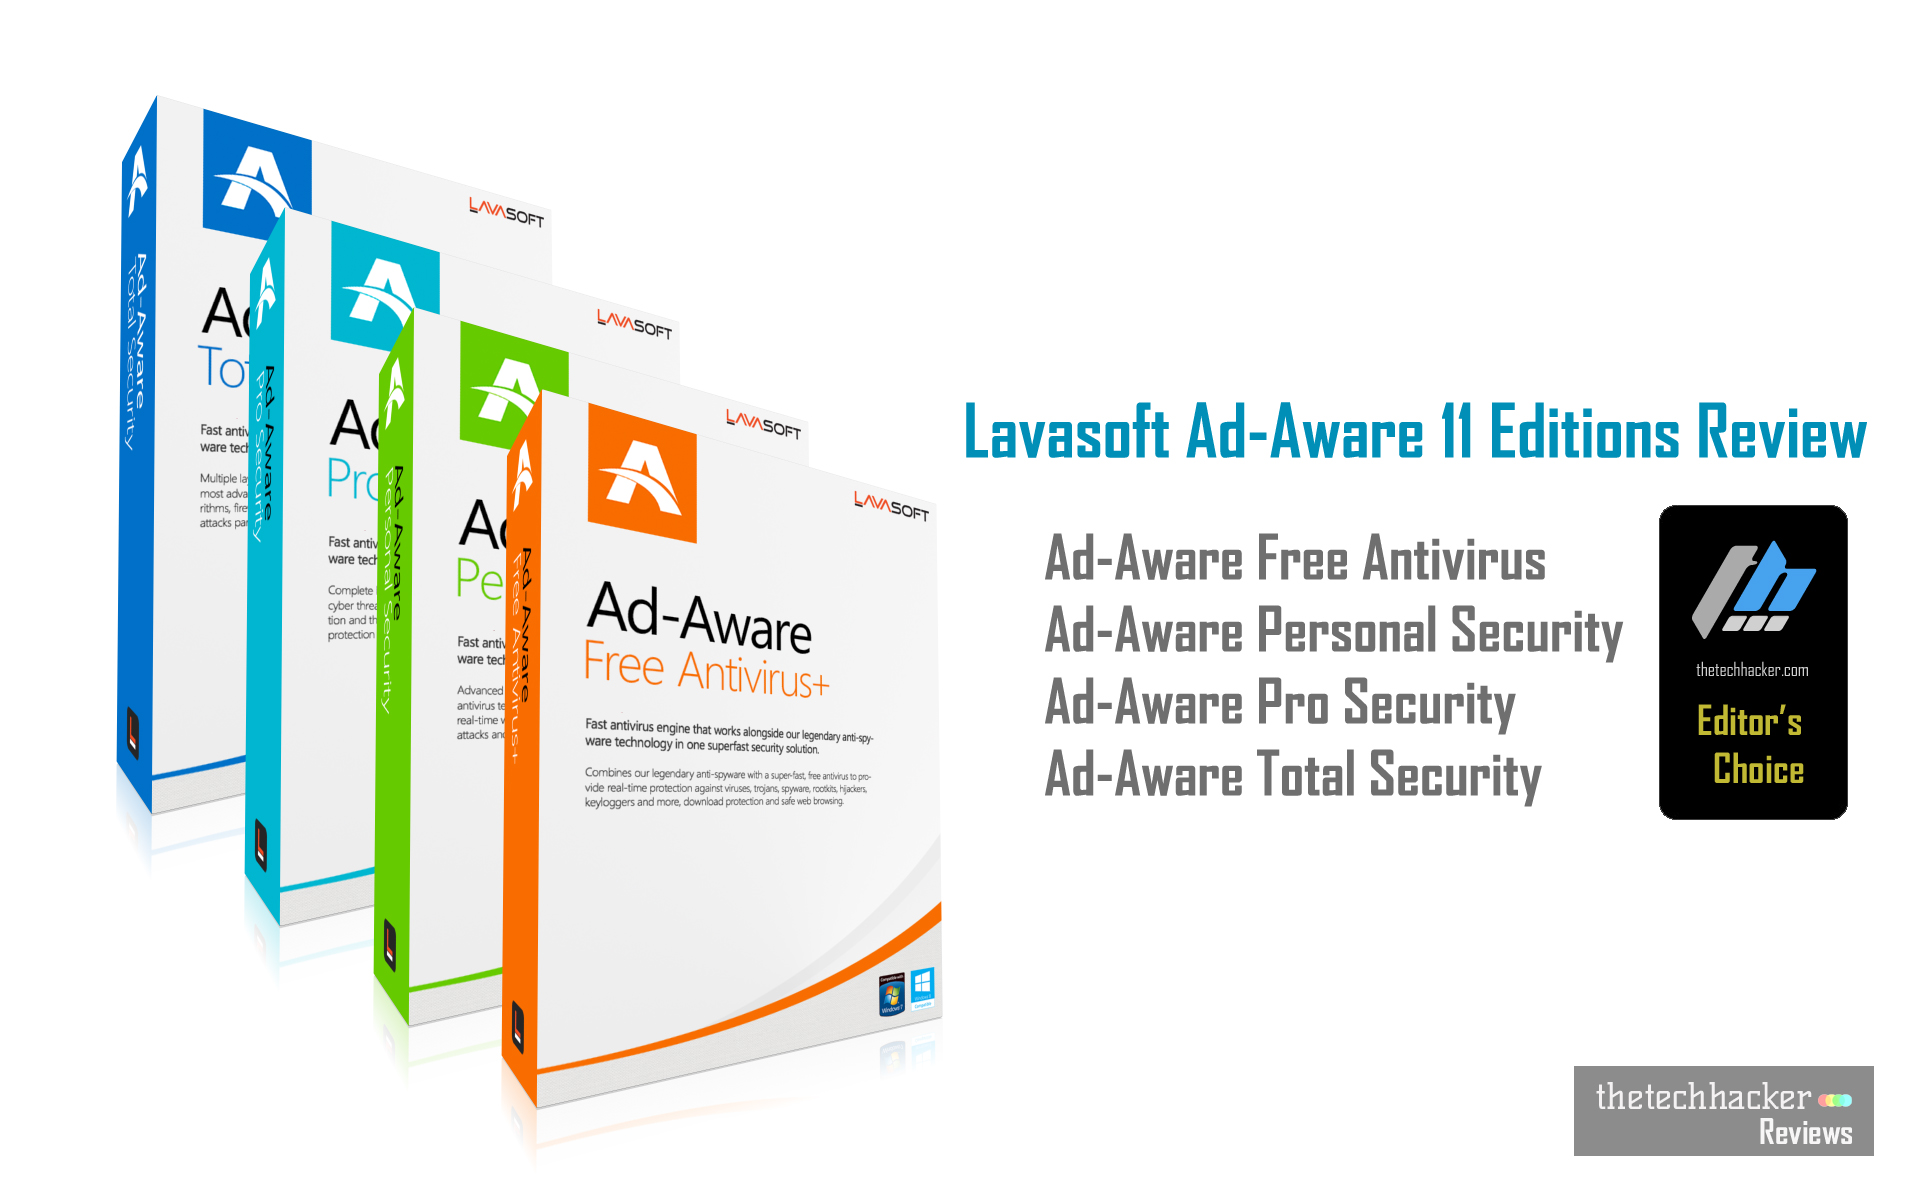 Lavasoft Ad-Aware 11 Editions Review